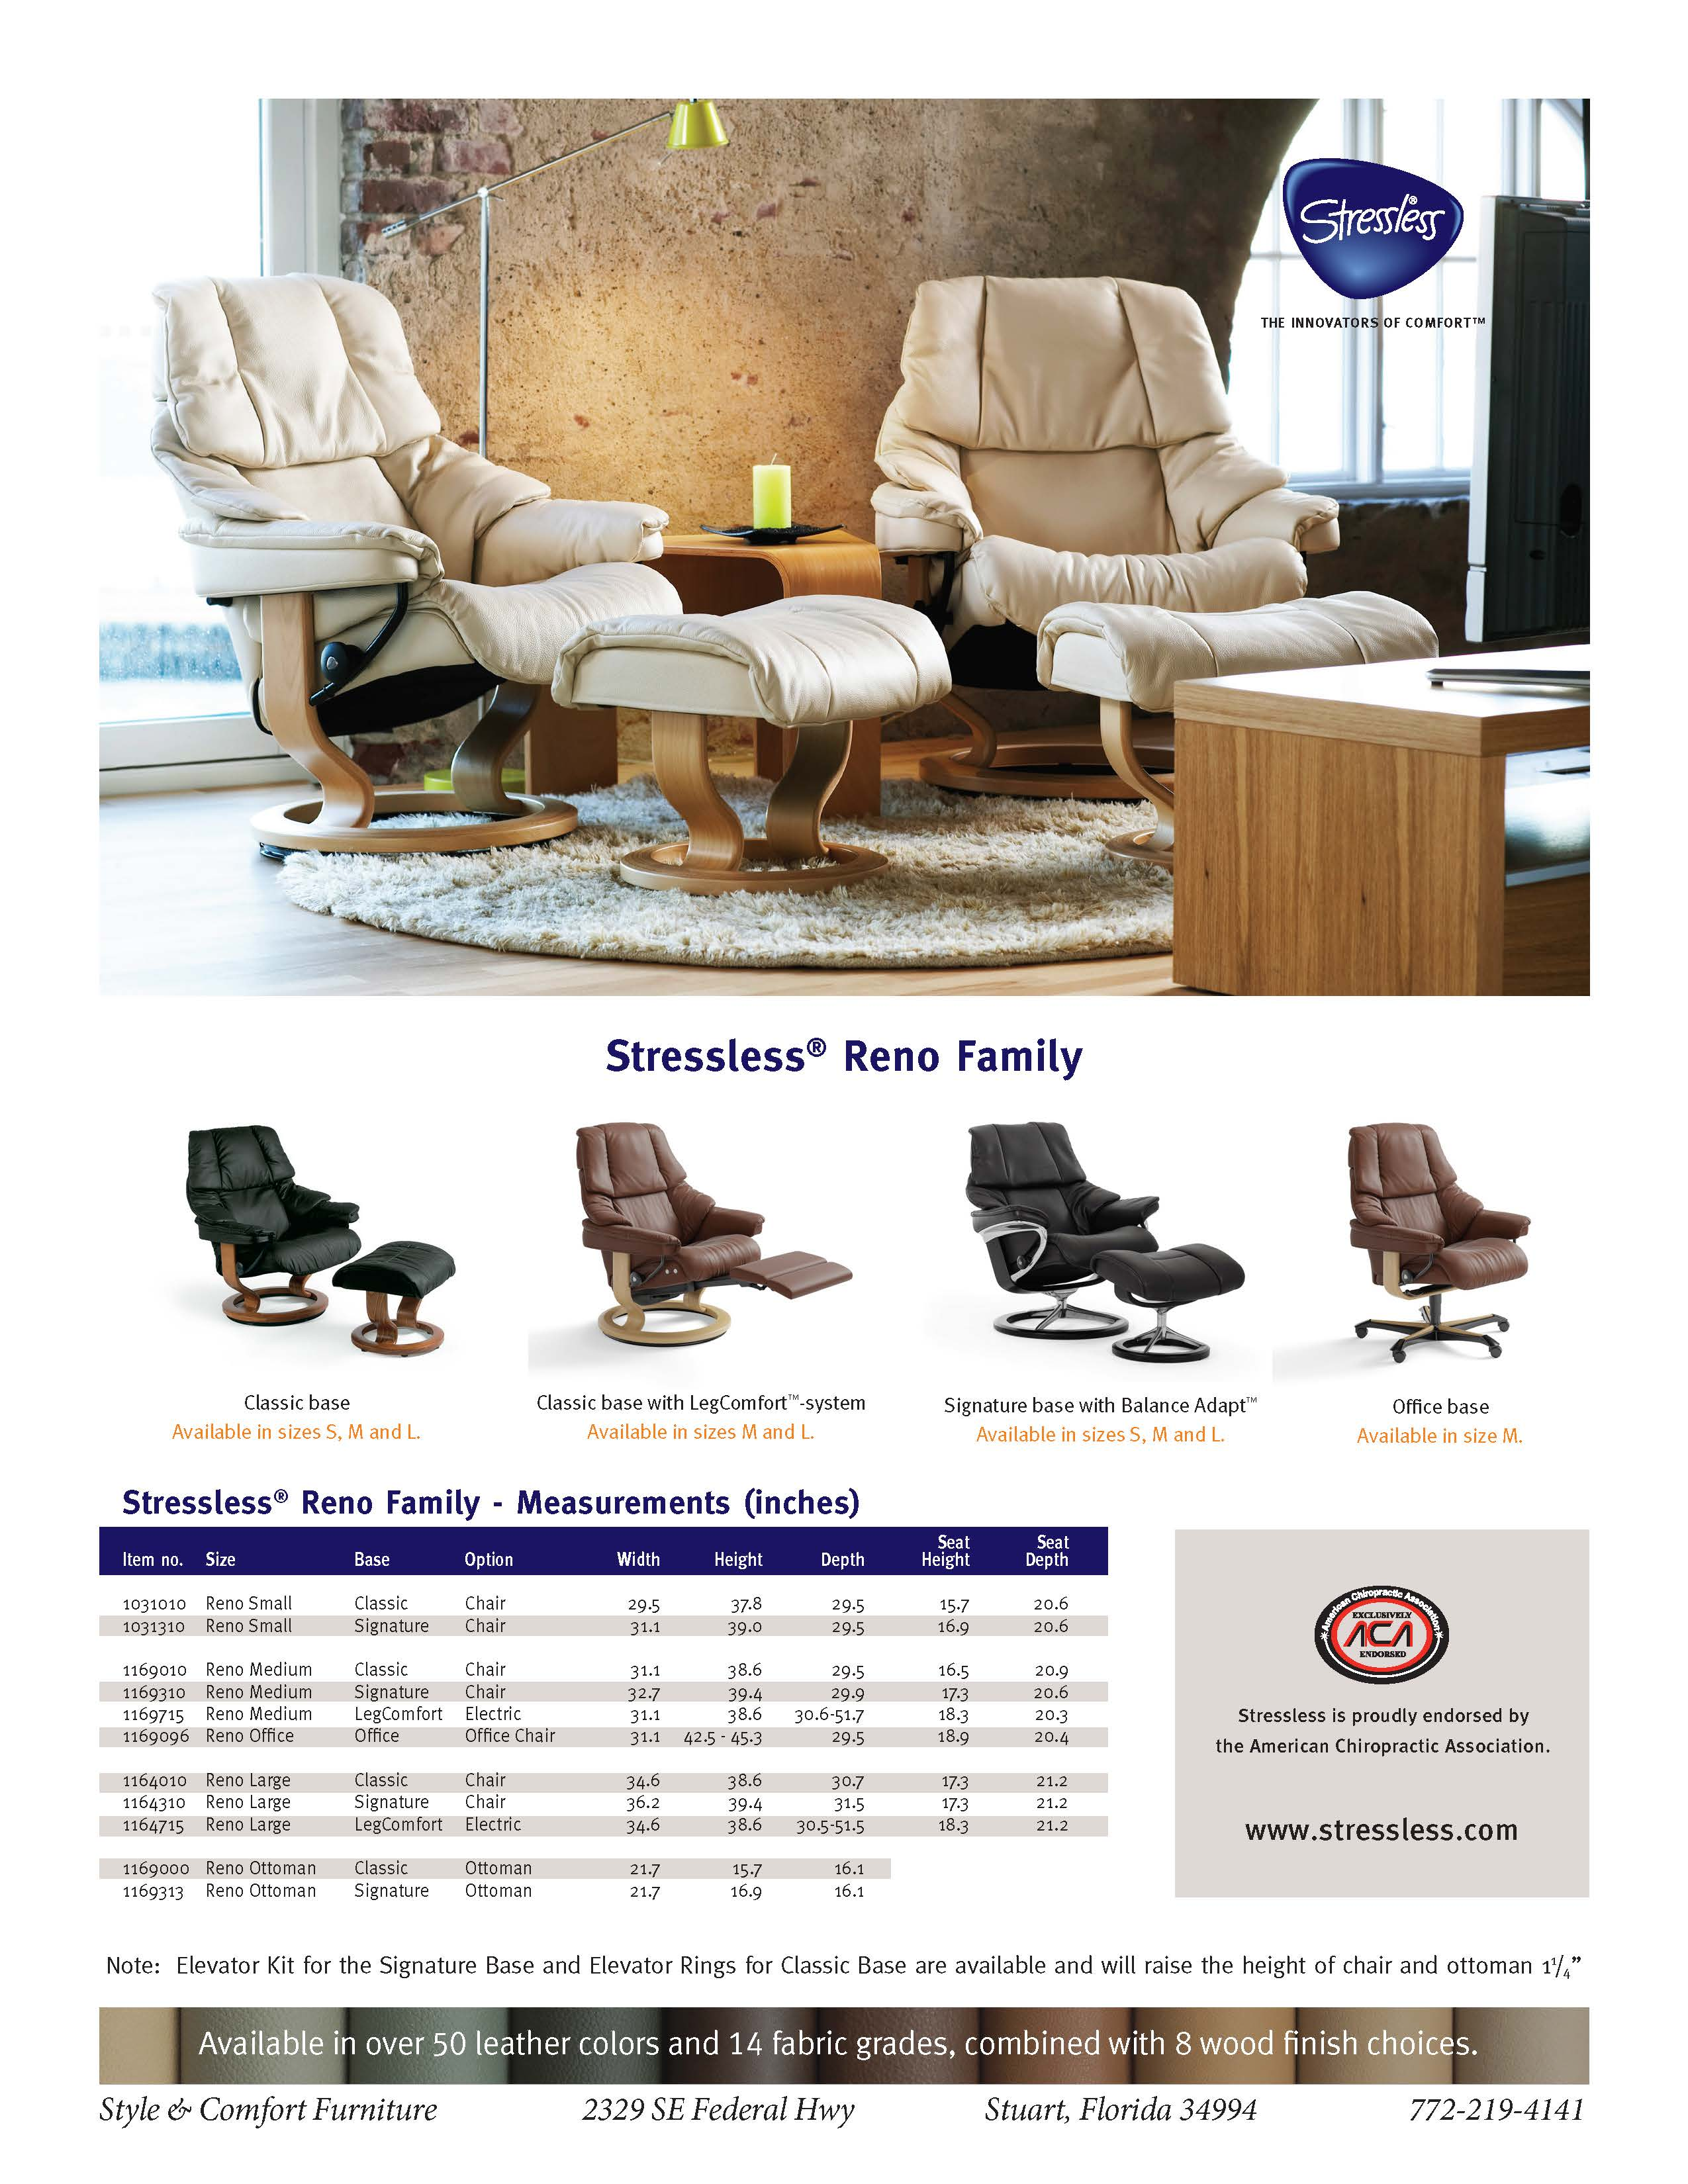 Reno Recliner Style And Comfort Furniture